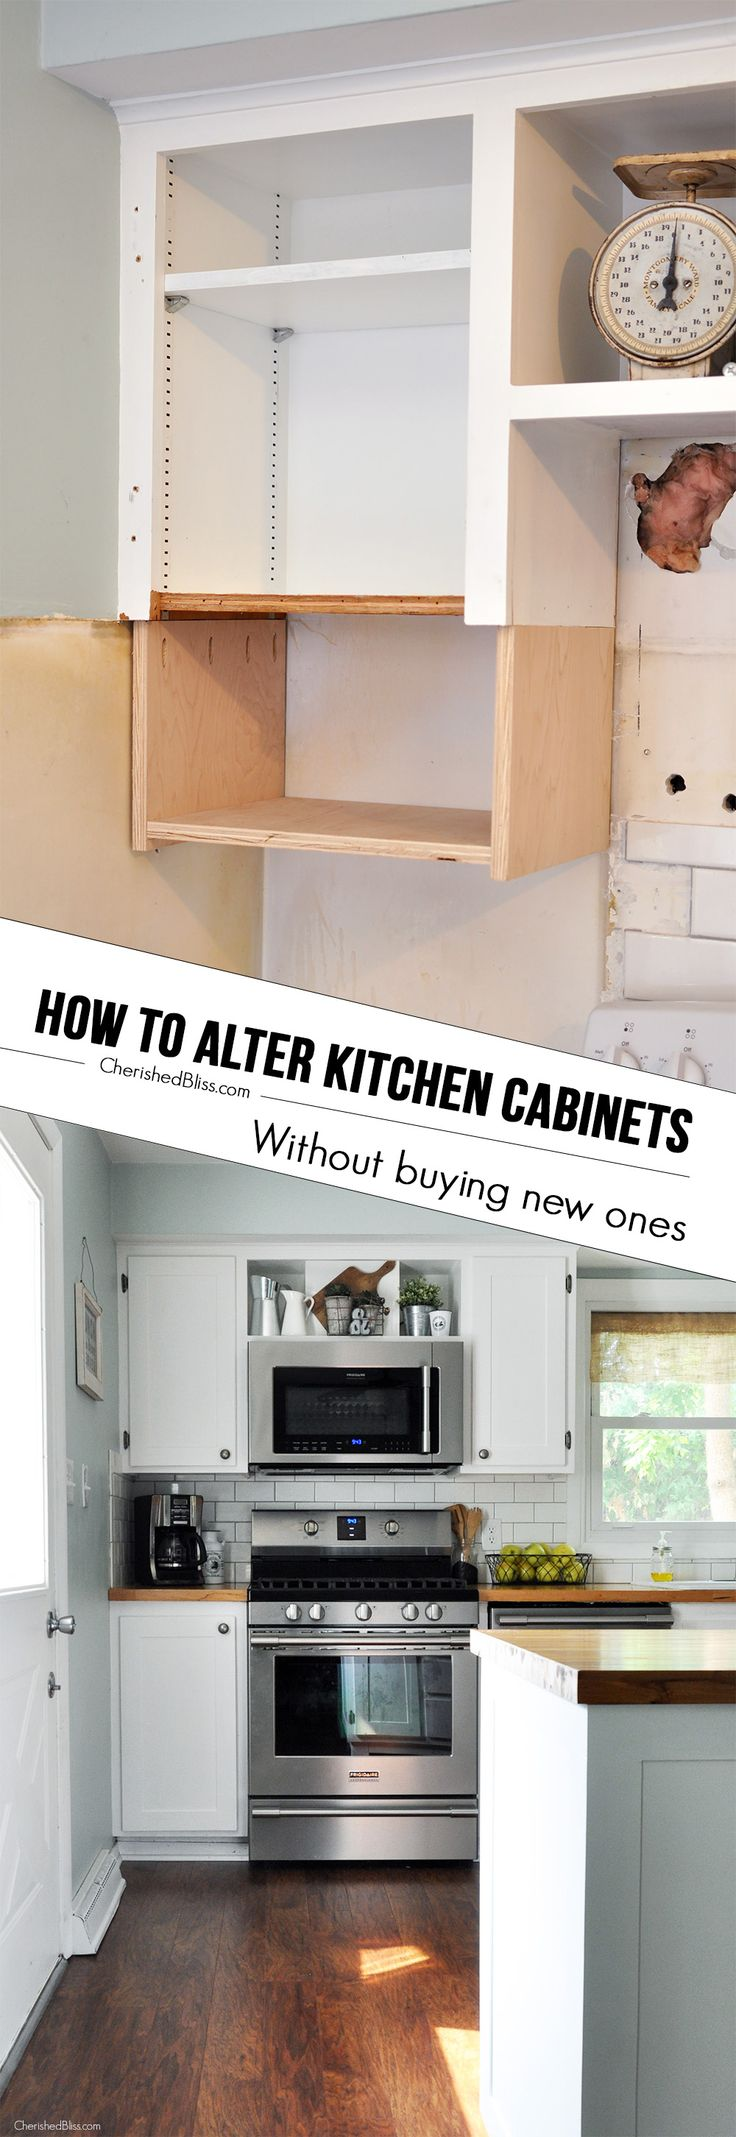 Best 25+ Replacement cabinet doors ideas on Pinterest | Cabinet ...